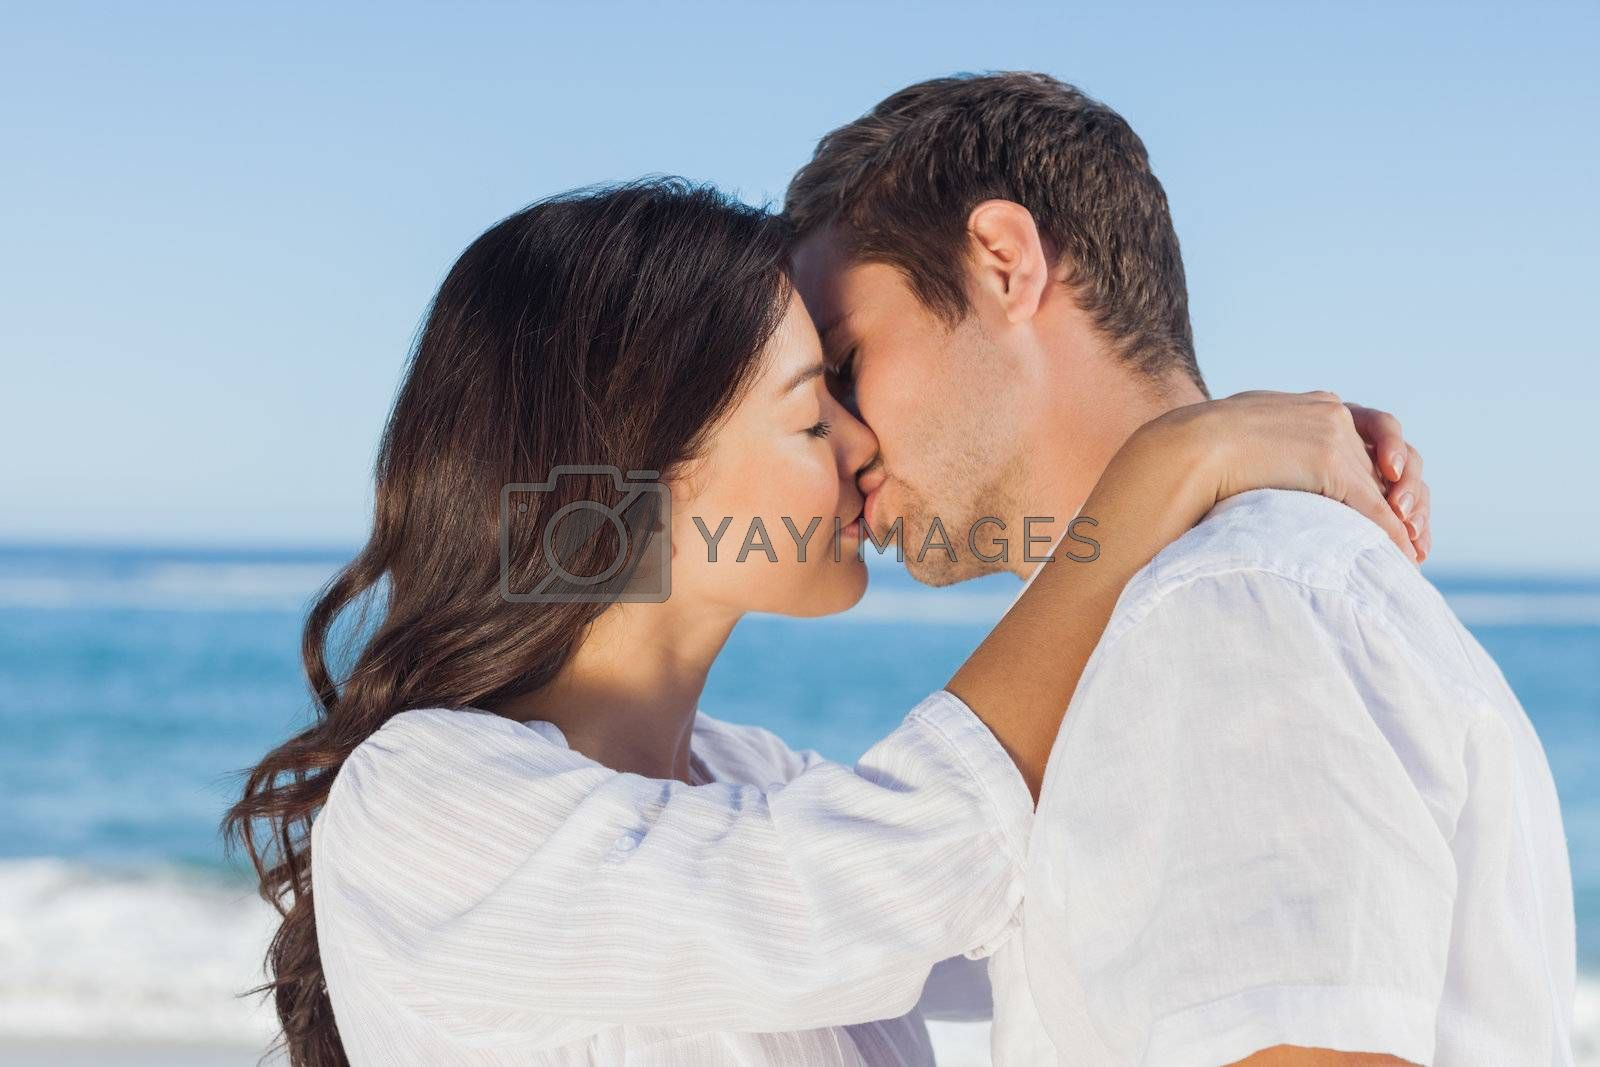 Couple embracing and kissing each other on the beach by Wavebreakmedia